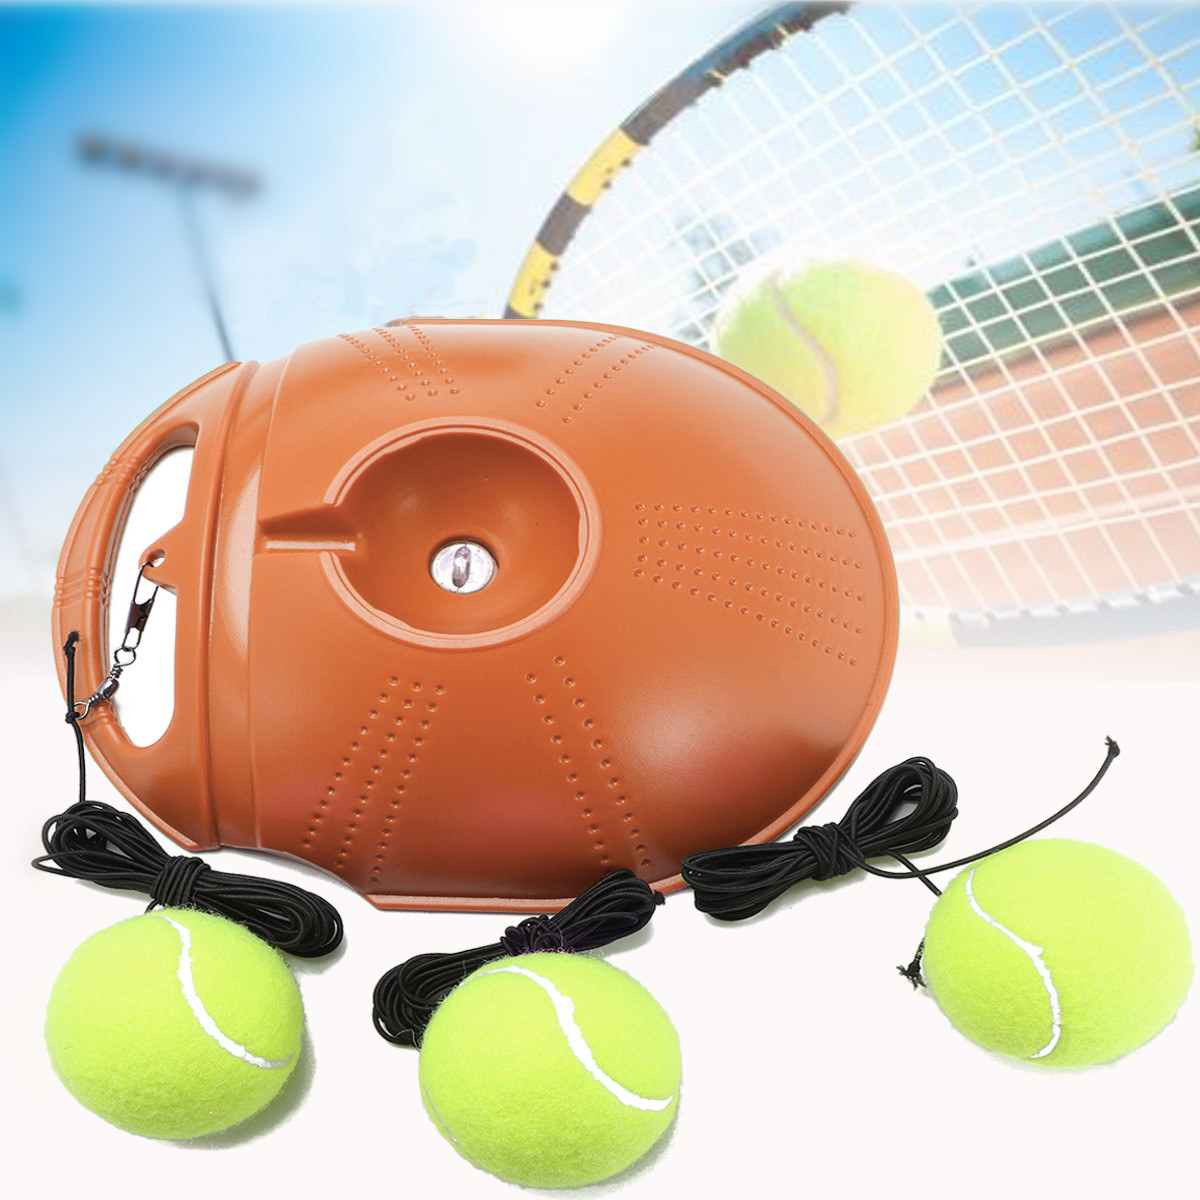 Tennis Trainer and Self-study Tennis Training Tool with Rebound Balls and Baseboard 8